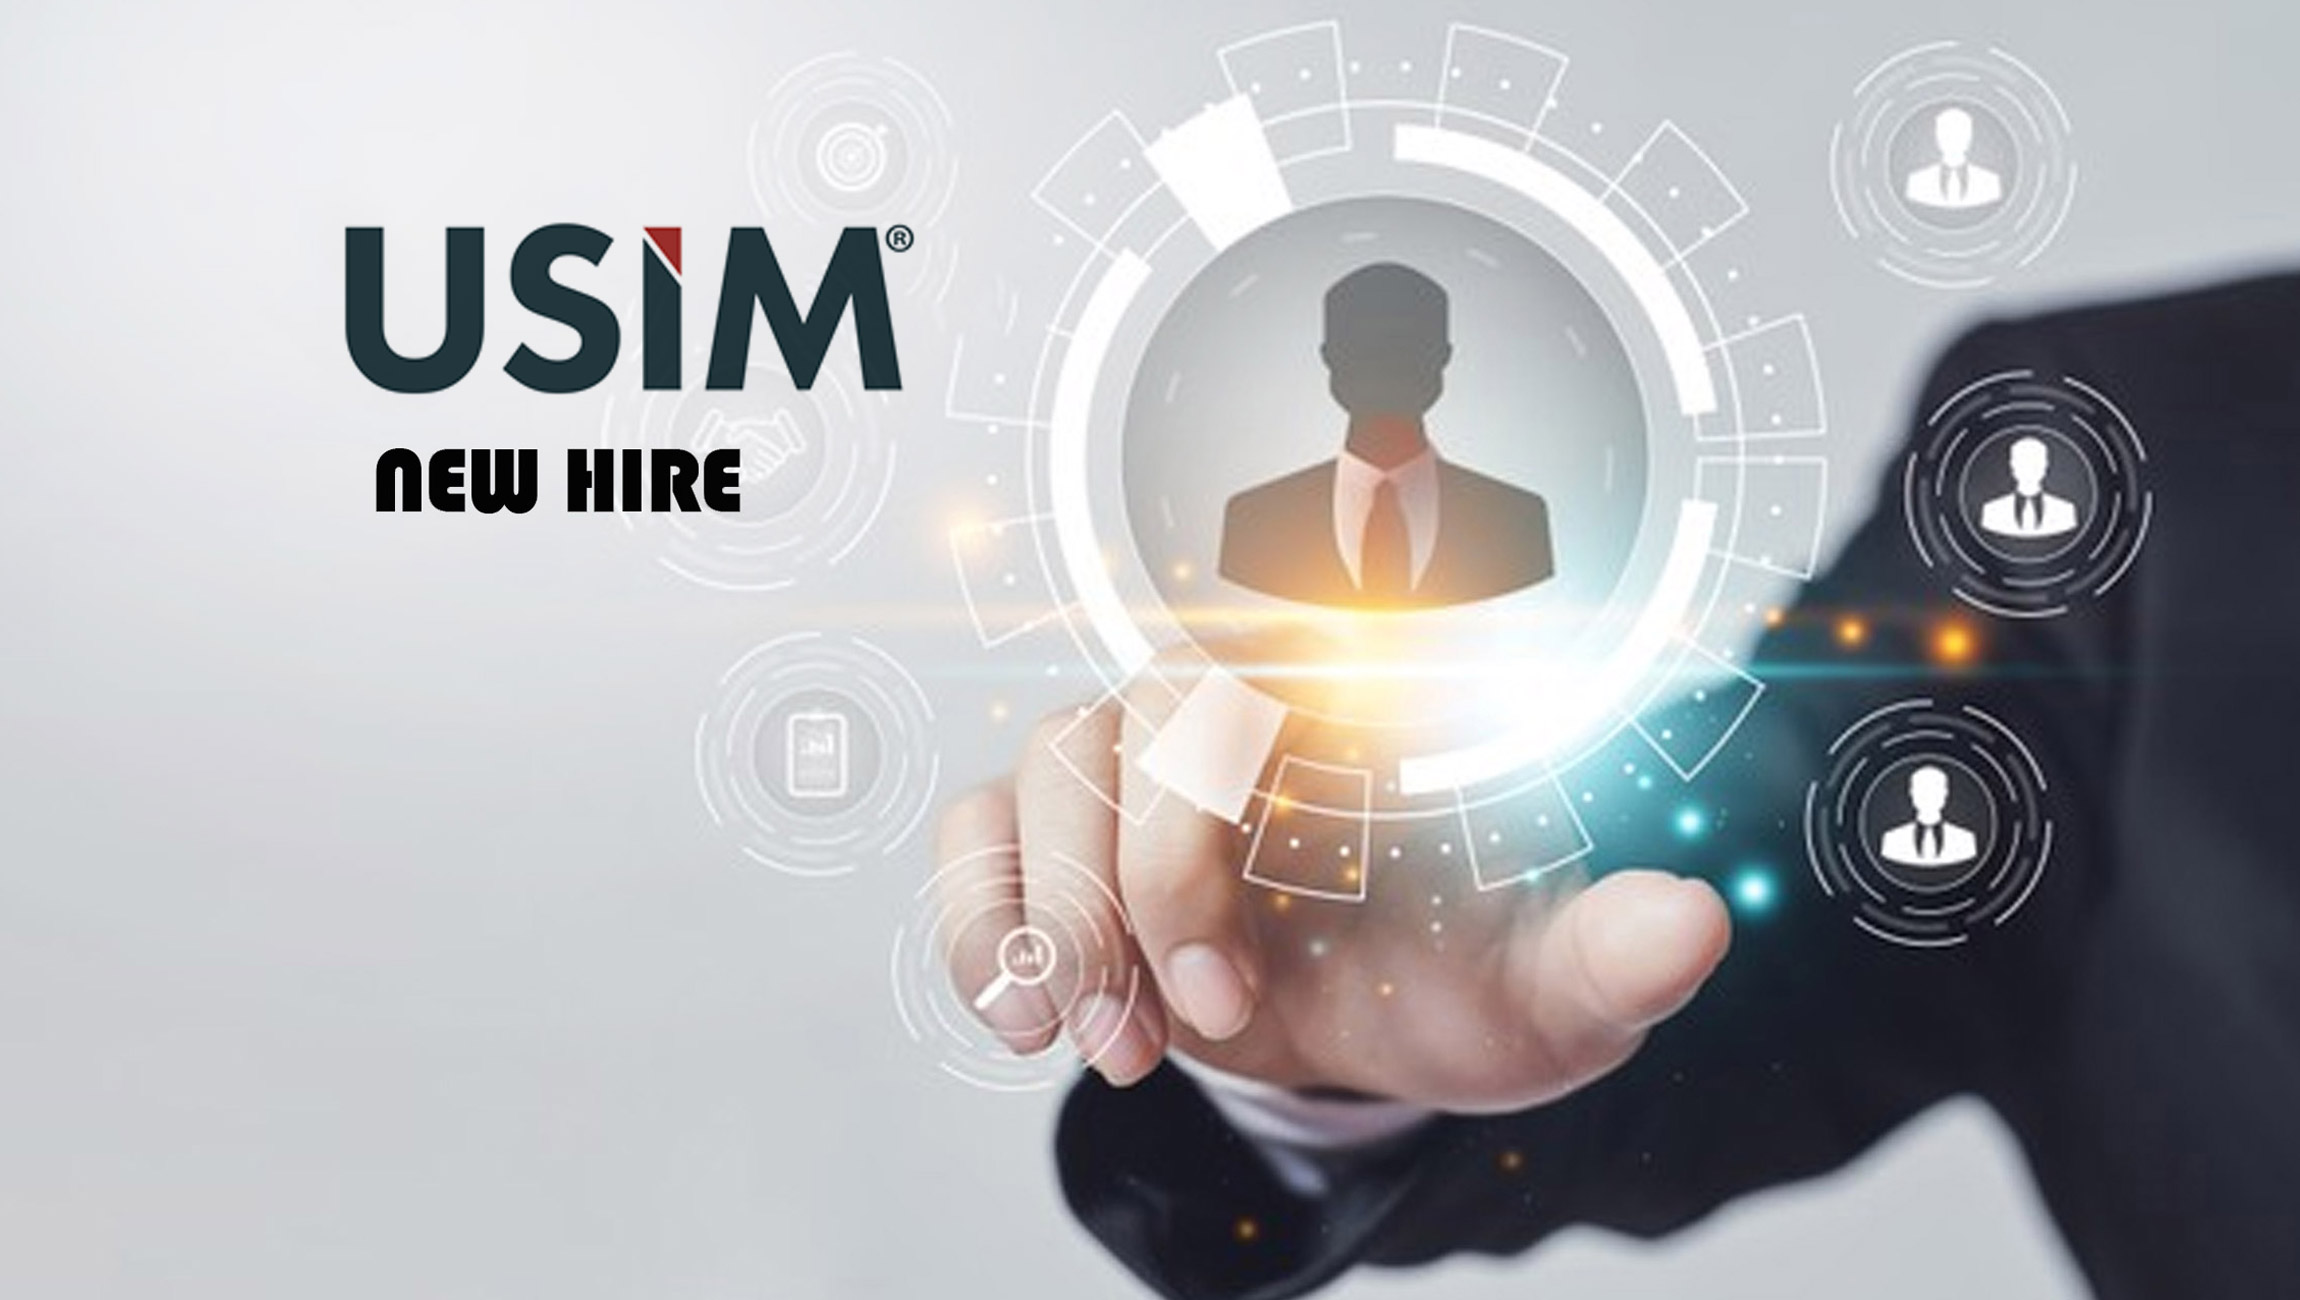 USIM Appoints Jason Shulman as New EVP  Chief Growth Officer.